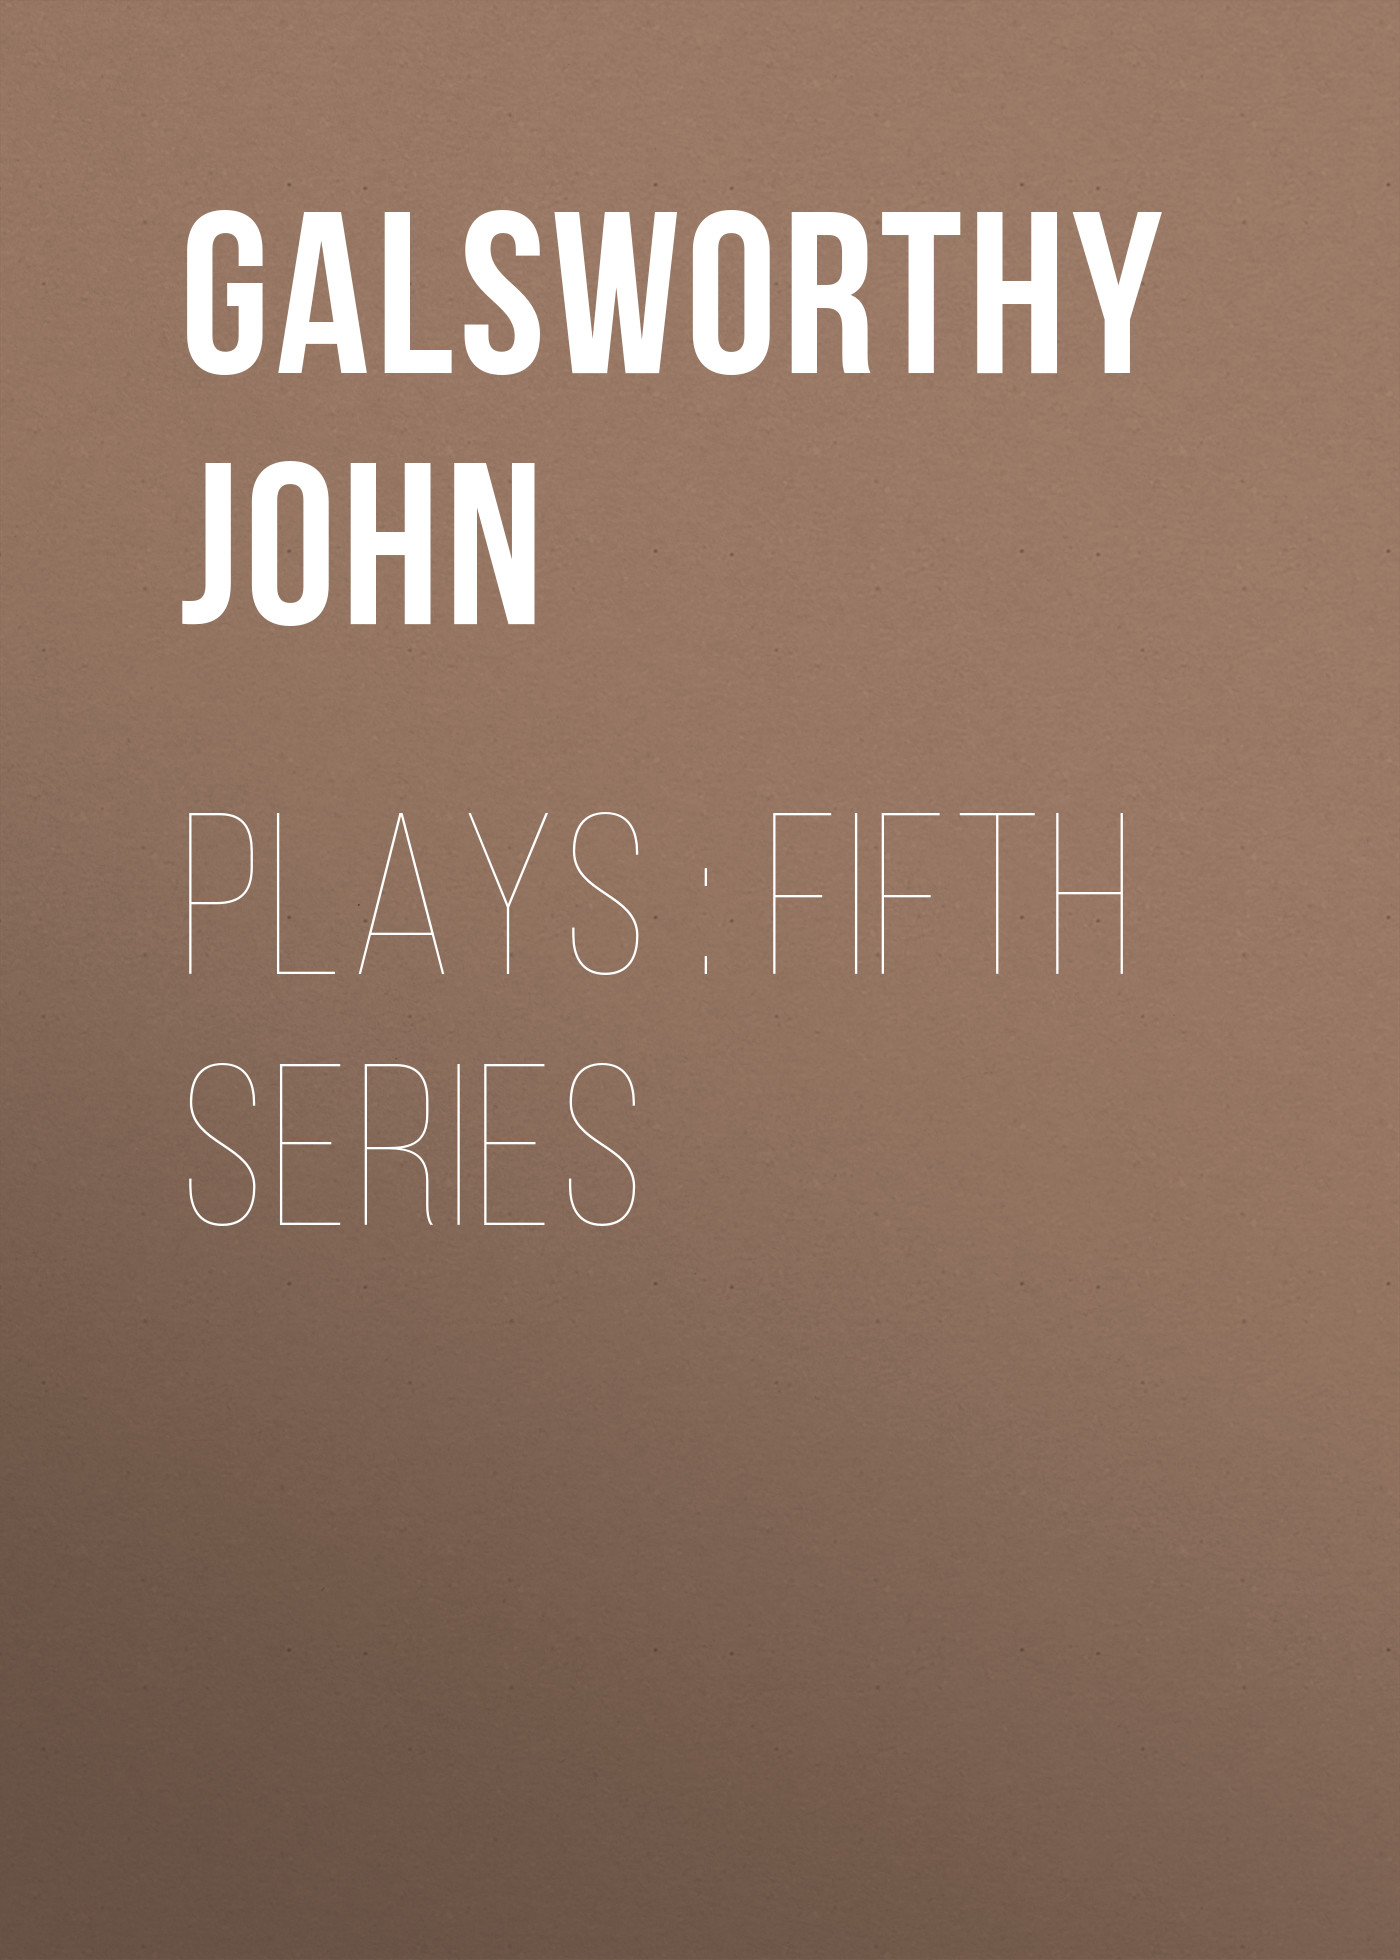 Galsworthy John Plays : Fifth Series galsworthy john quotes and images from the works of john galsworthy